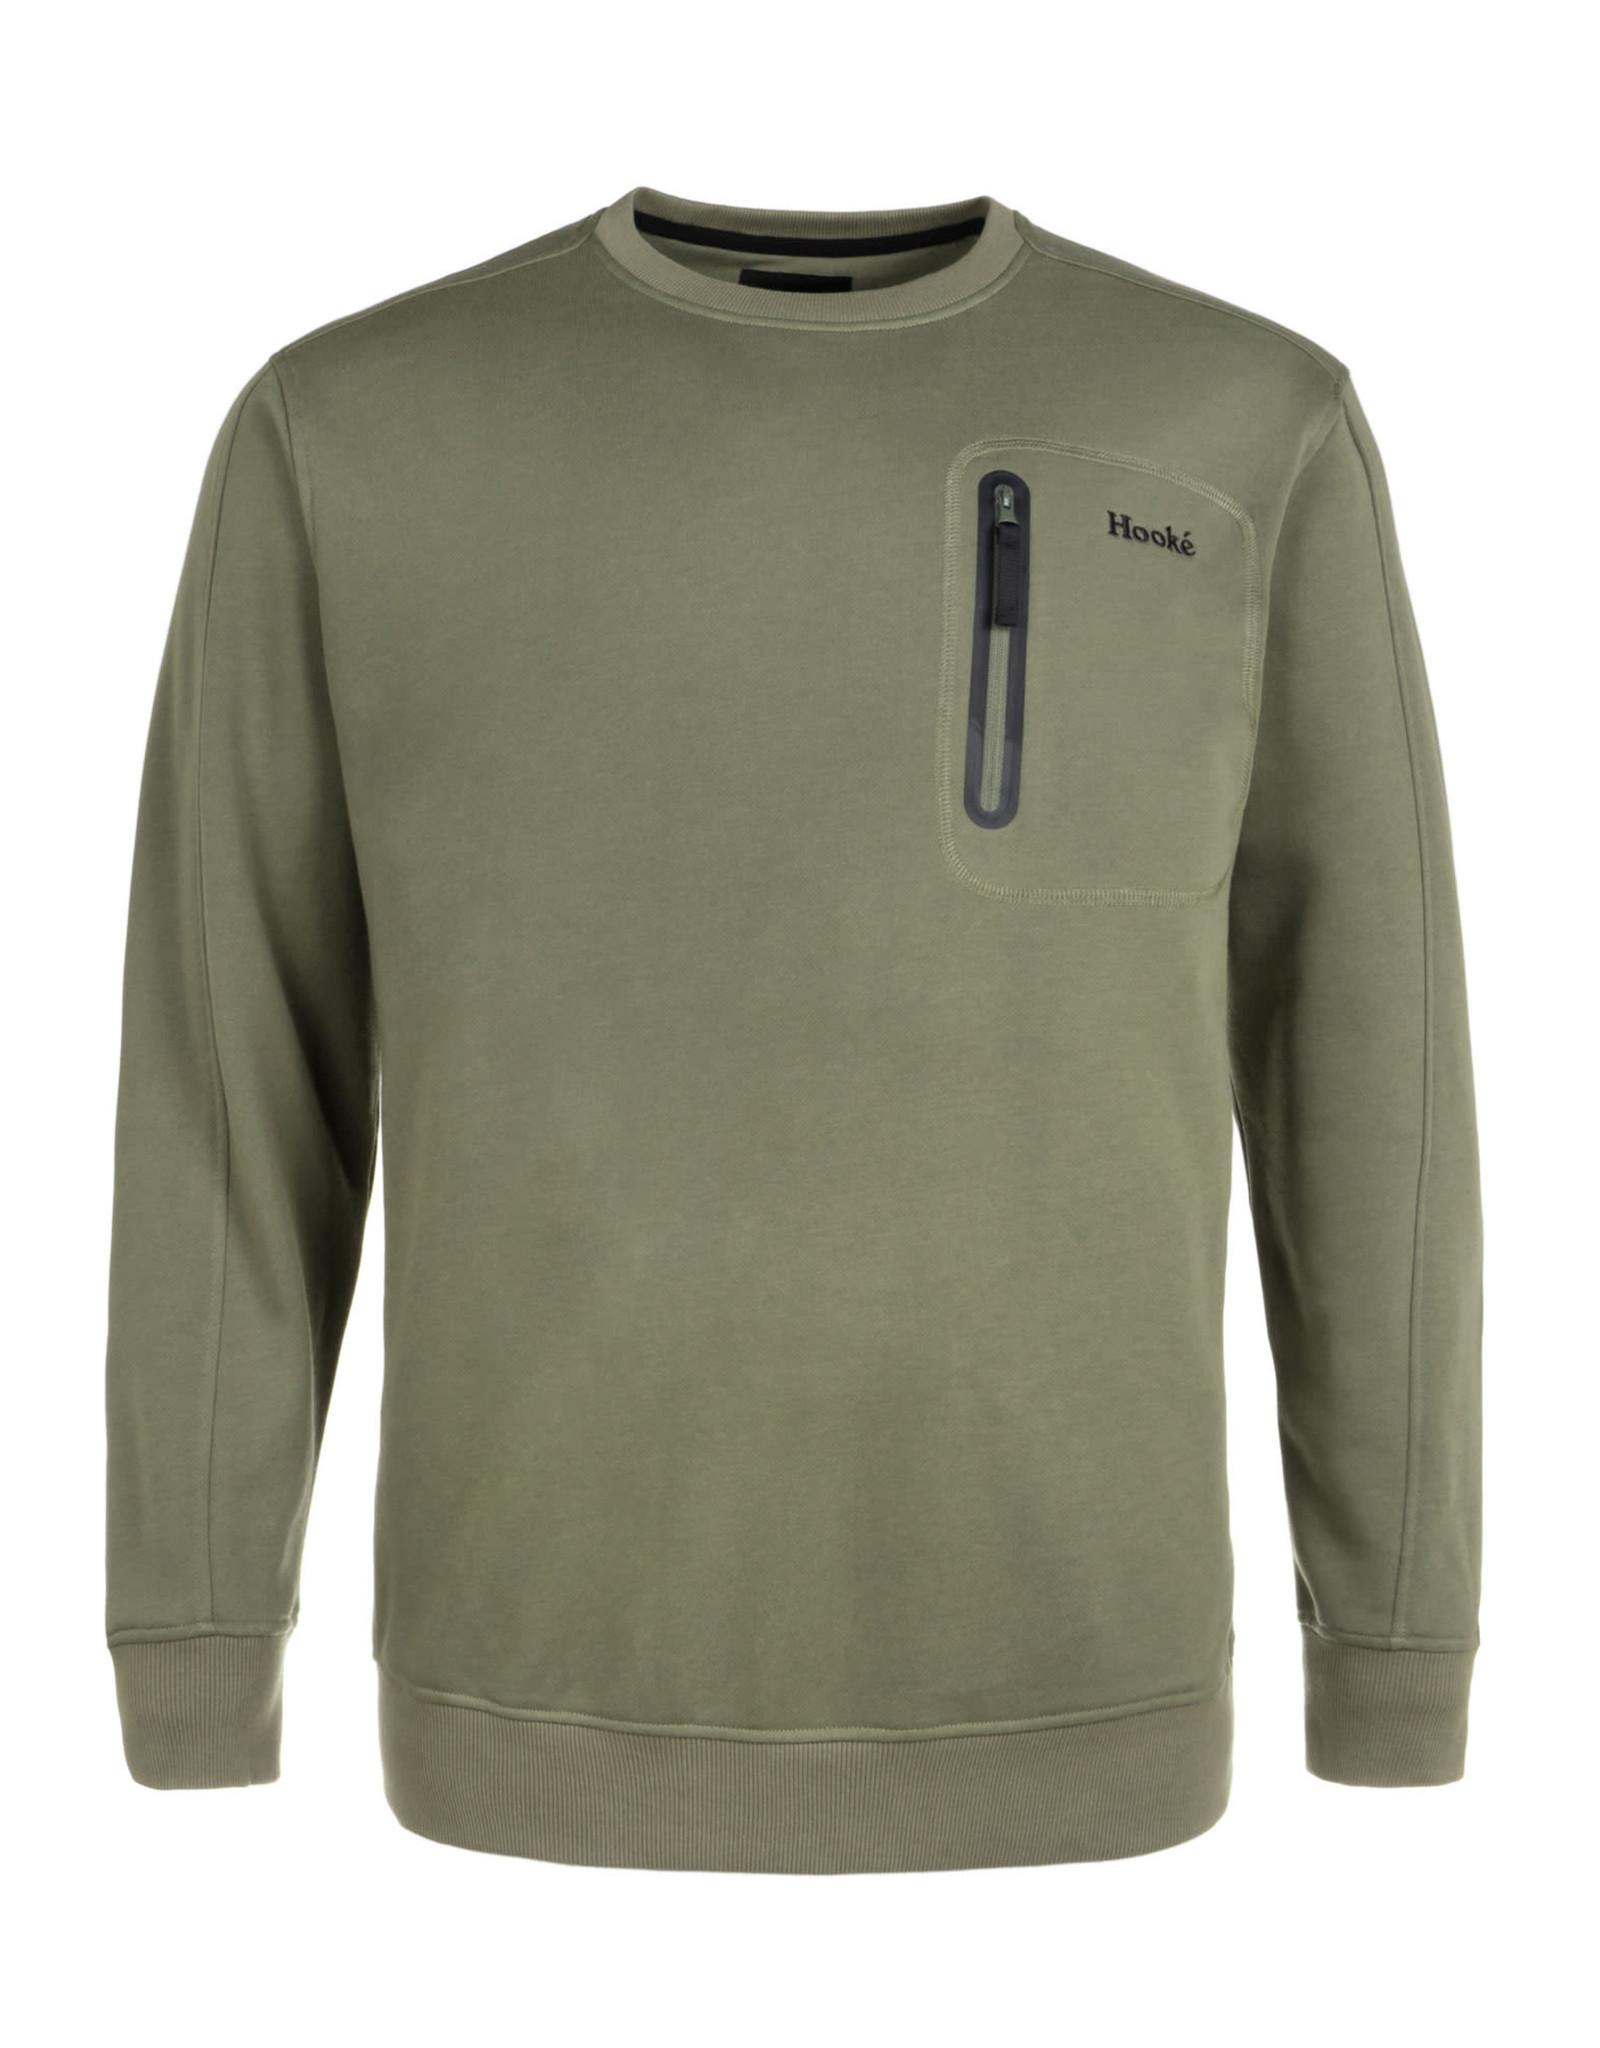 Hooké Chandail Trail Crewneck